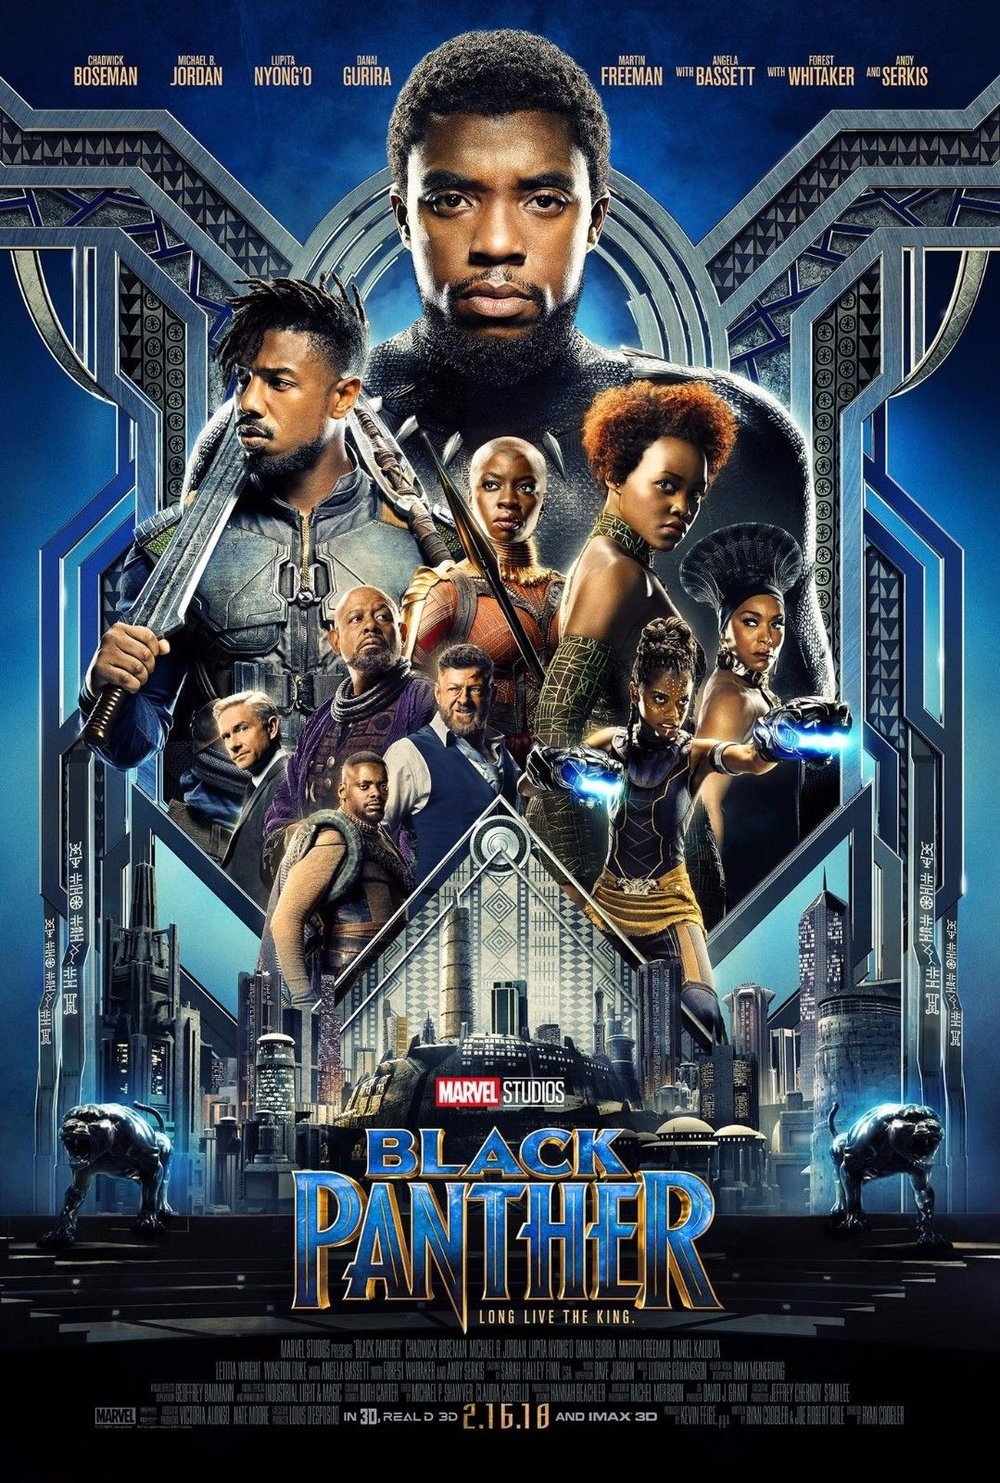 Black-Panther-Movie-Poster-2018-13x20-27x40-32x48.jpg